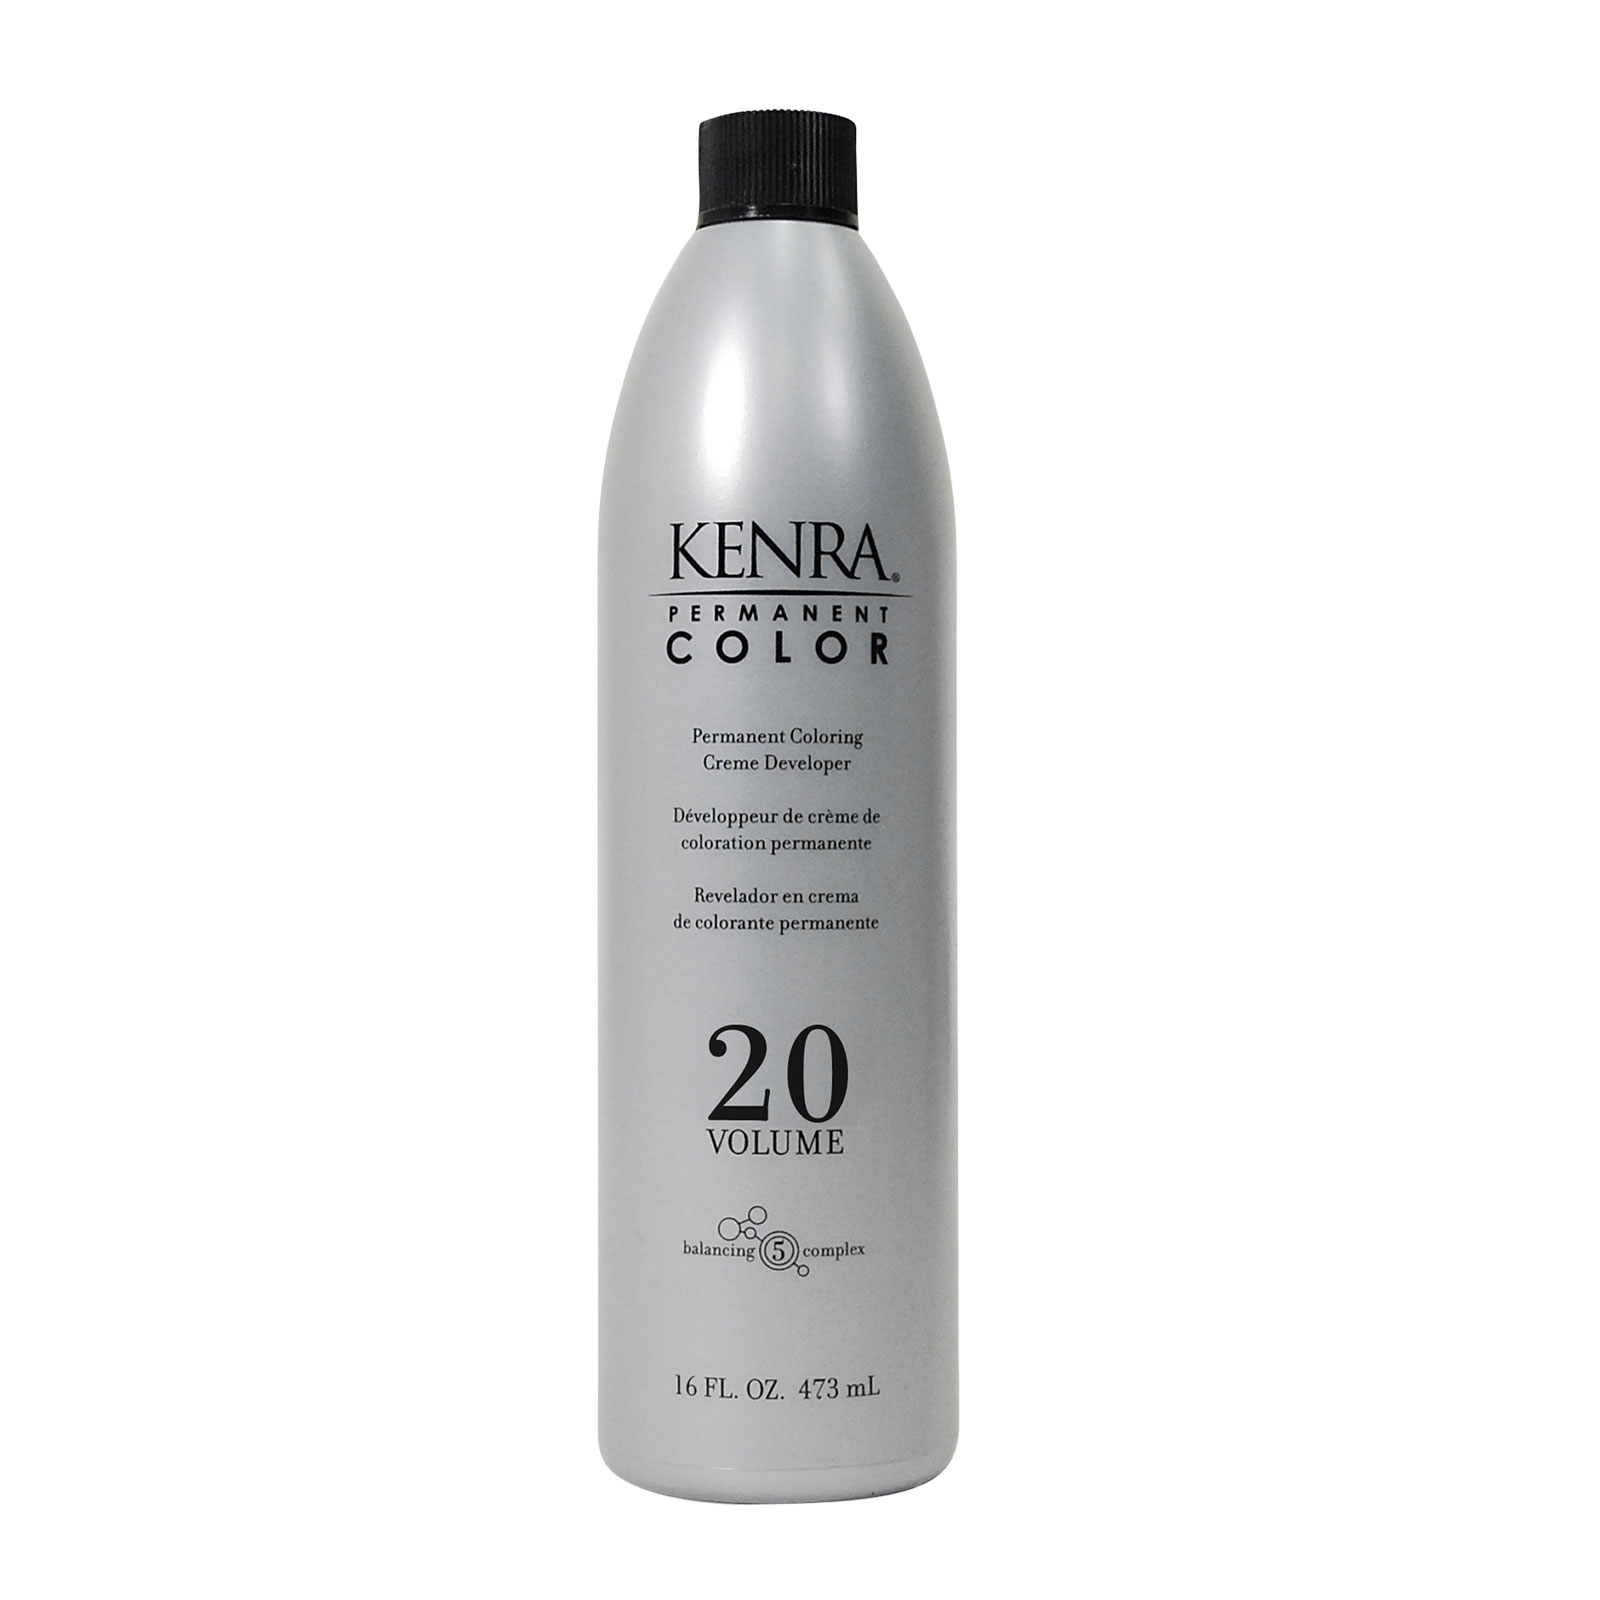 20 Volume Creme Developer Kenra Cosmoprof